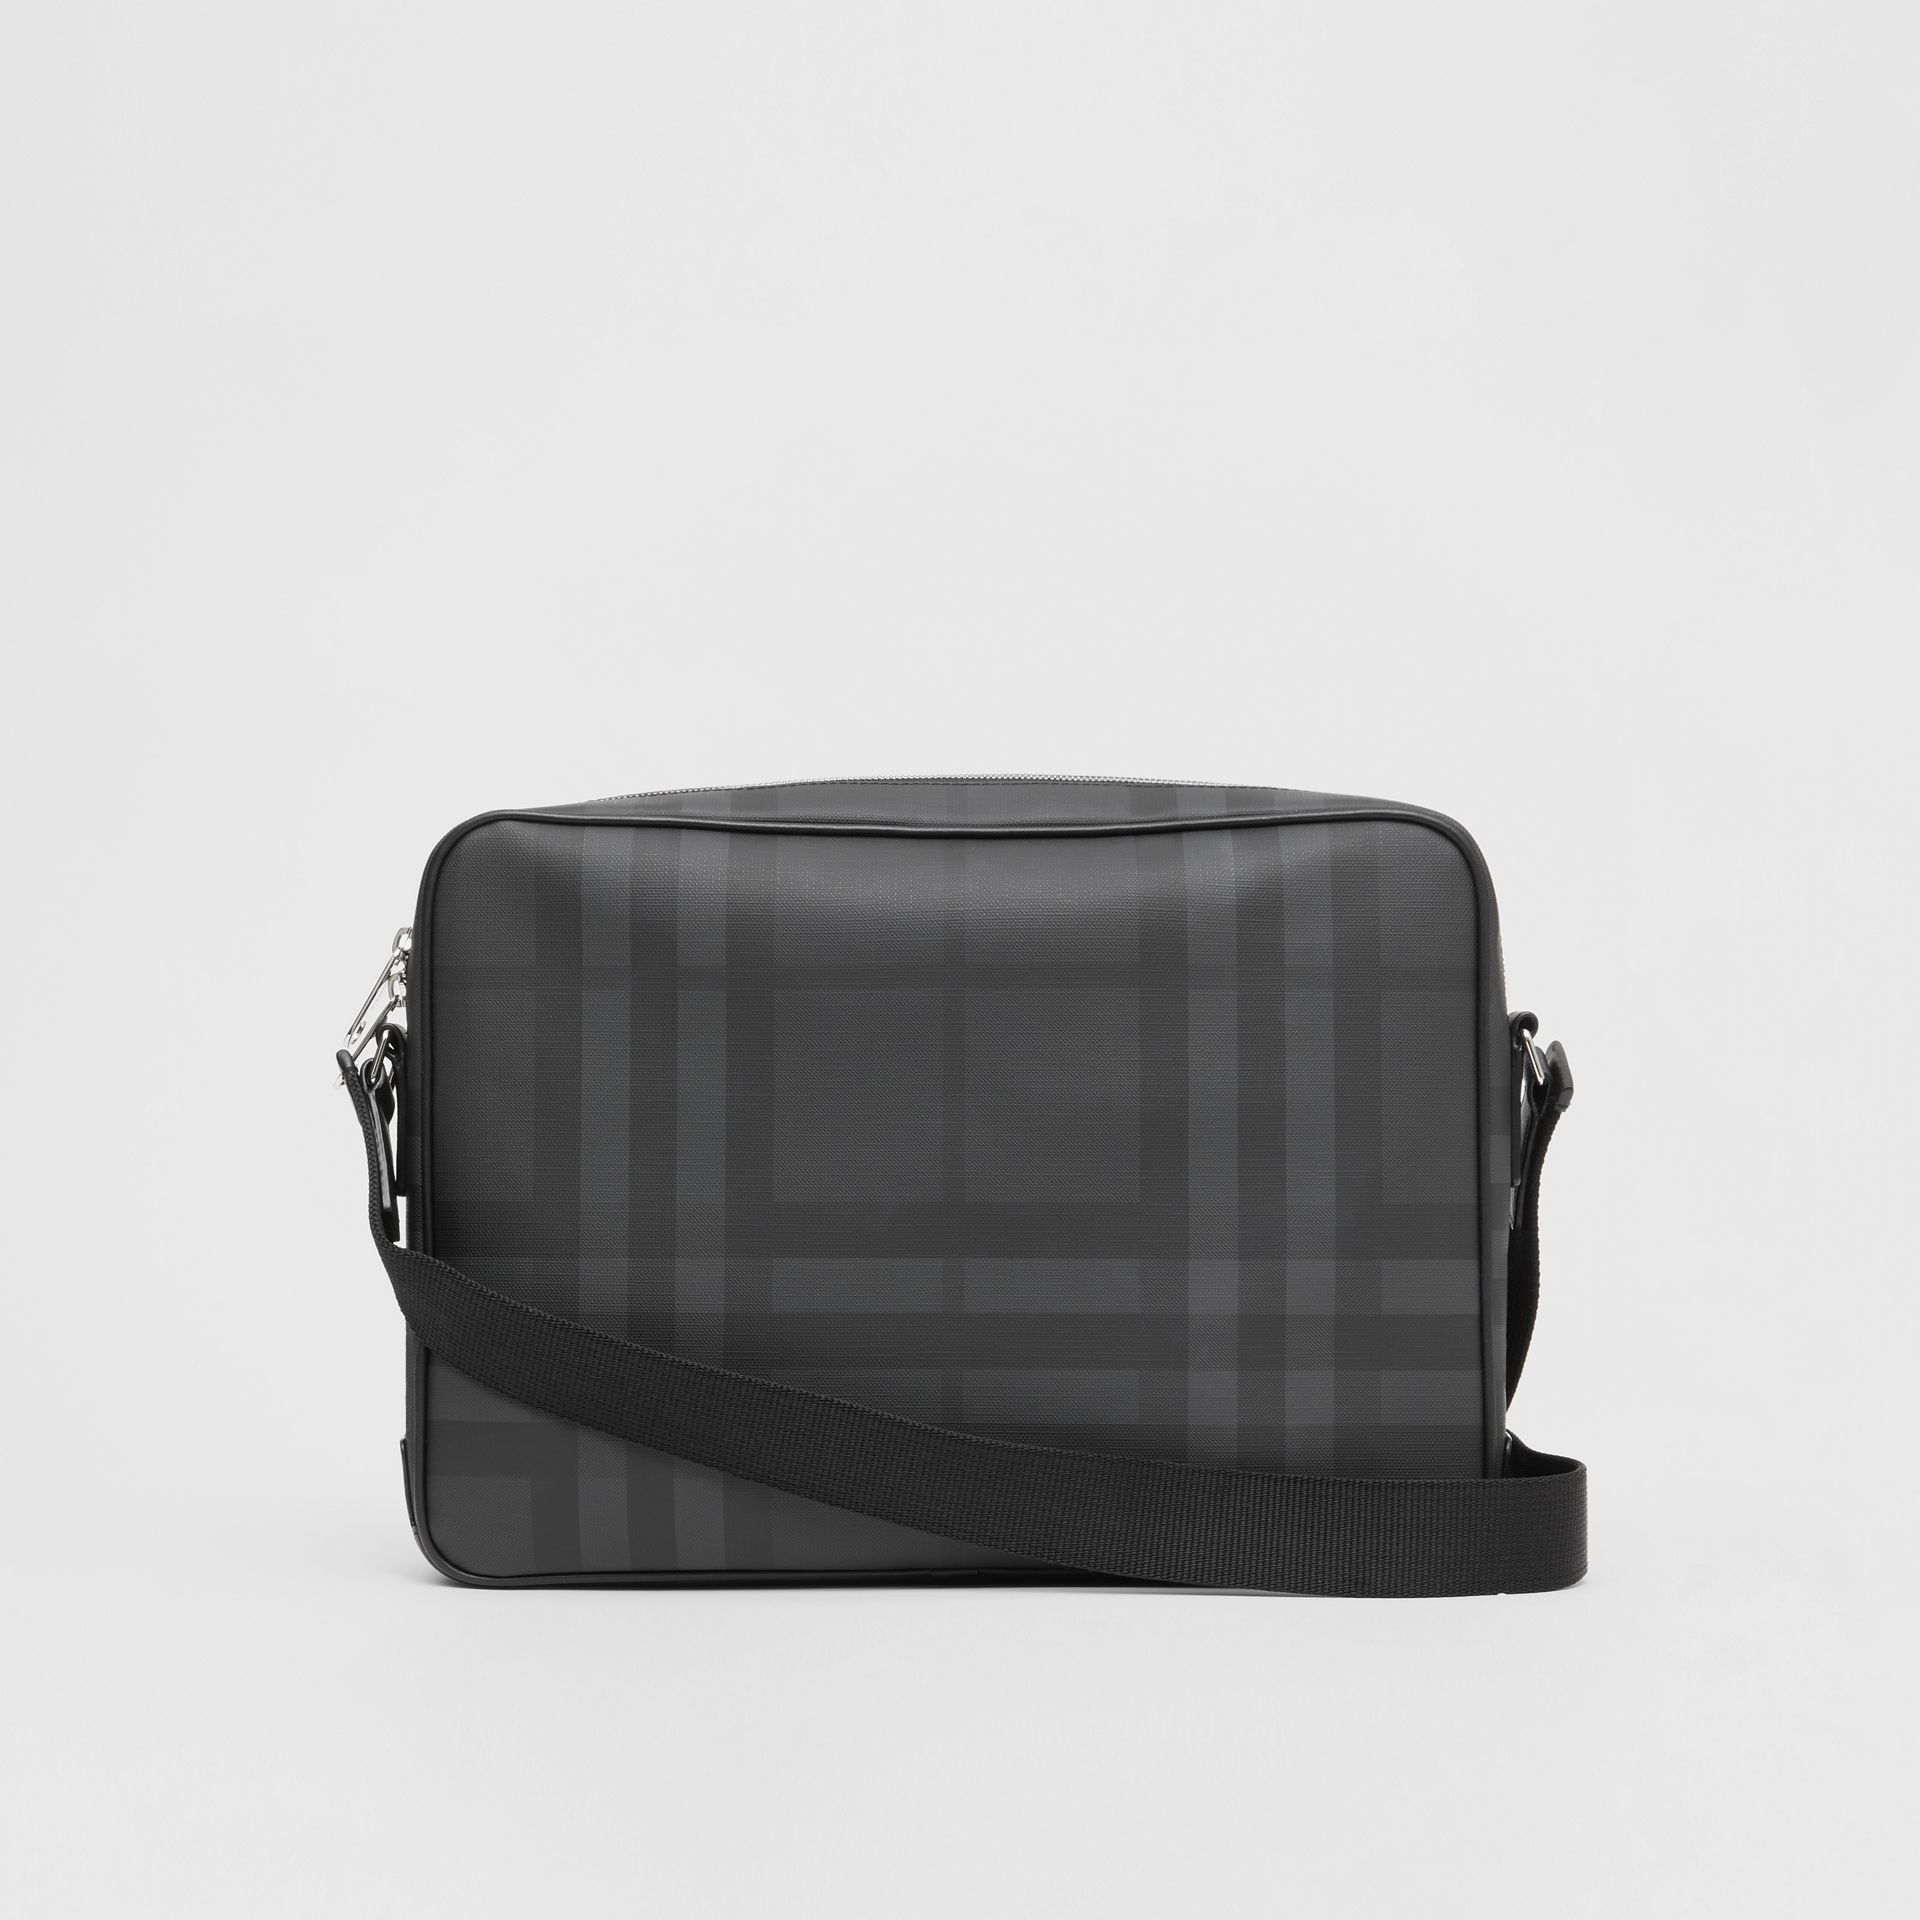 London Check and Leather Messenger Bag in Dark Charcoal - Men | Burberry United Kingdom - gallery image 7